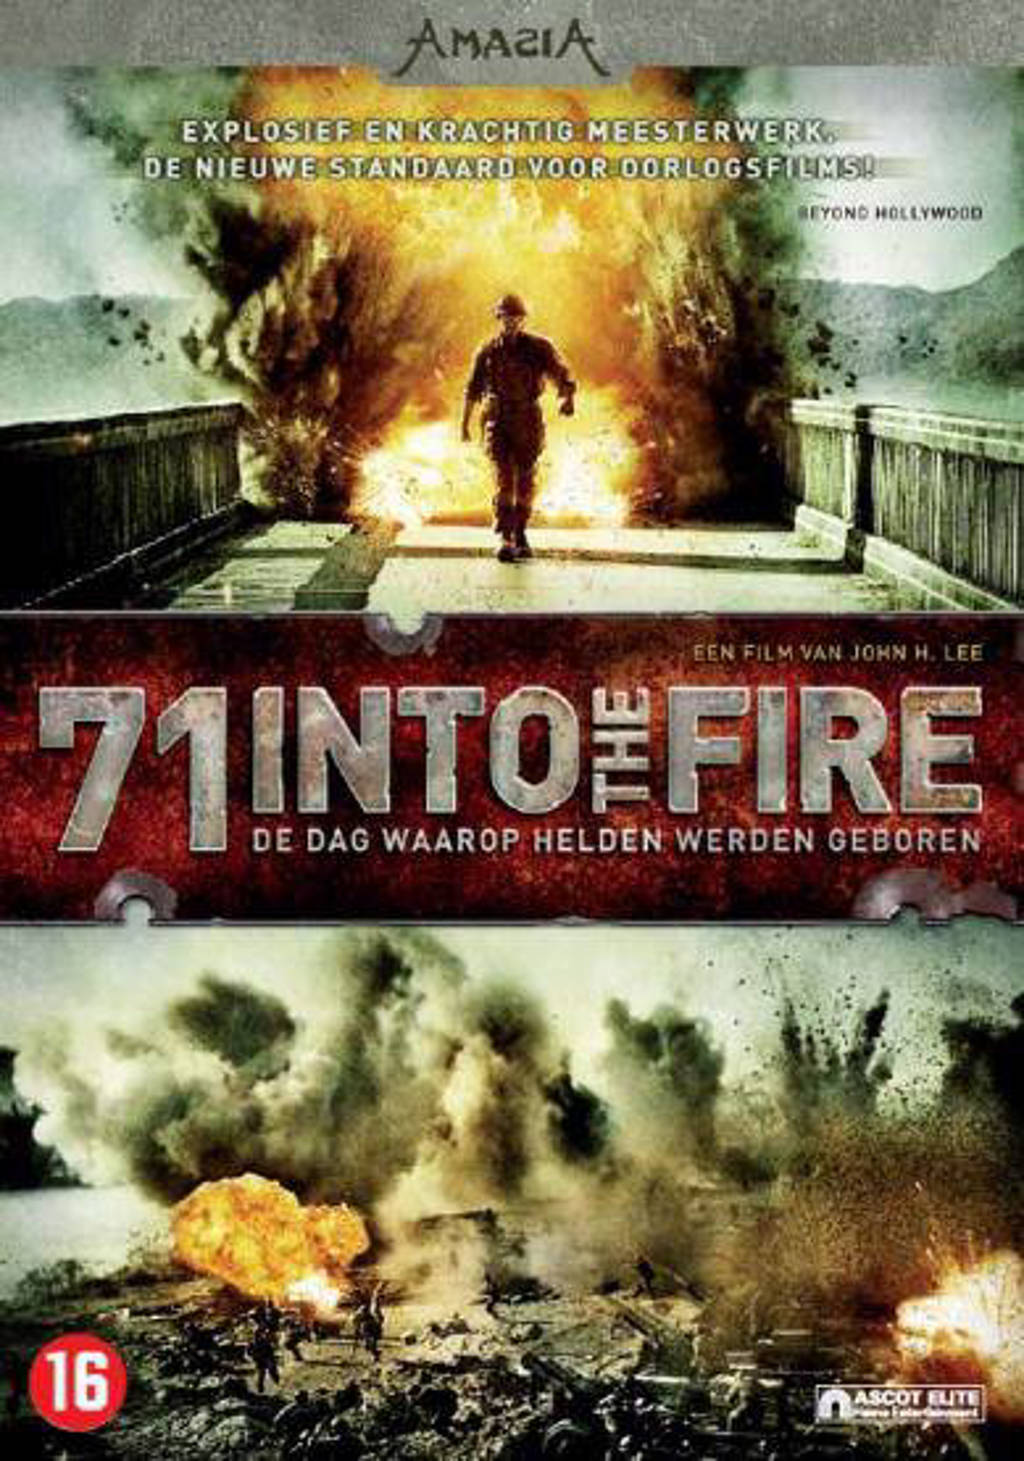 71 - Into the fire (DVD)